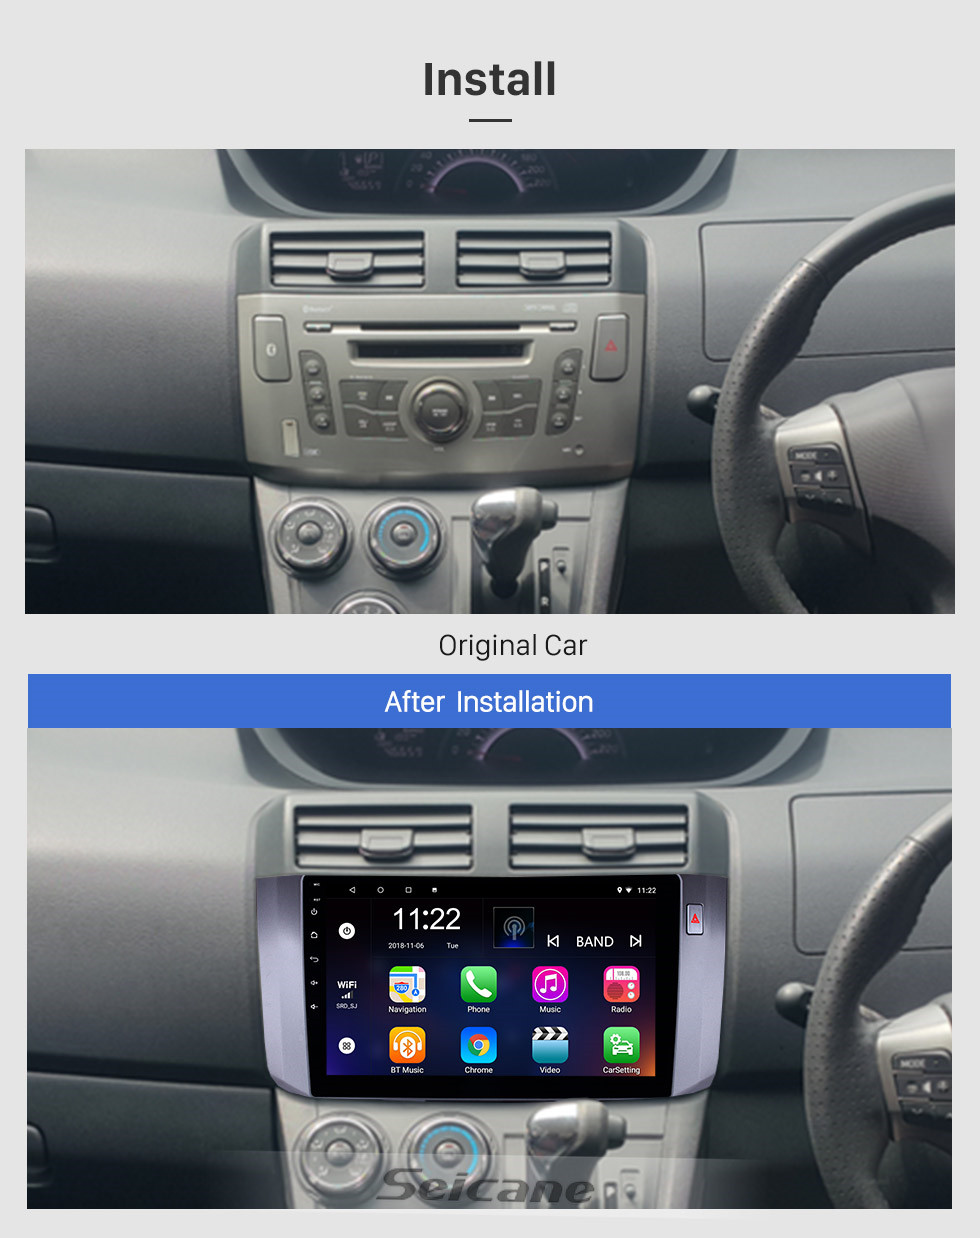 Seicane 2010-2017 Toyota ALZA Android 10.0 Touchscreen 10.1 inch Head Unit Bluetooth GPS Navigation Radio with AUX support OBD2 DVR SWC Carplay